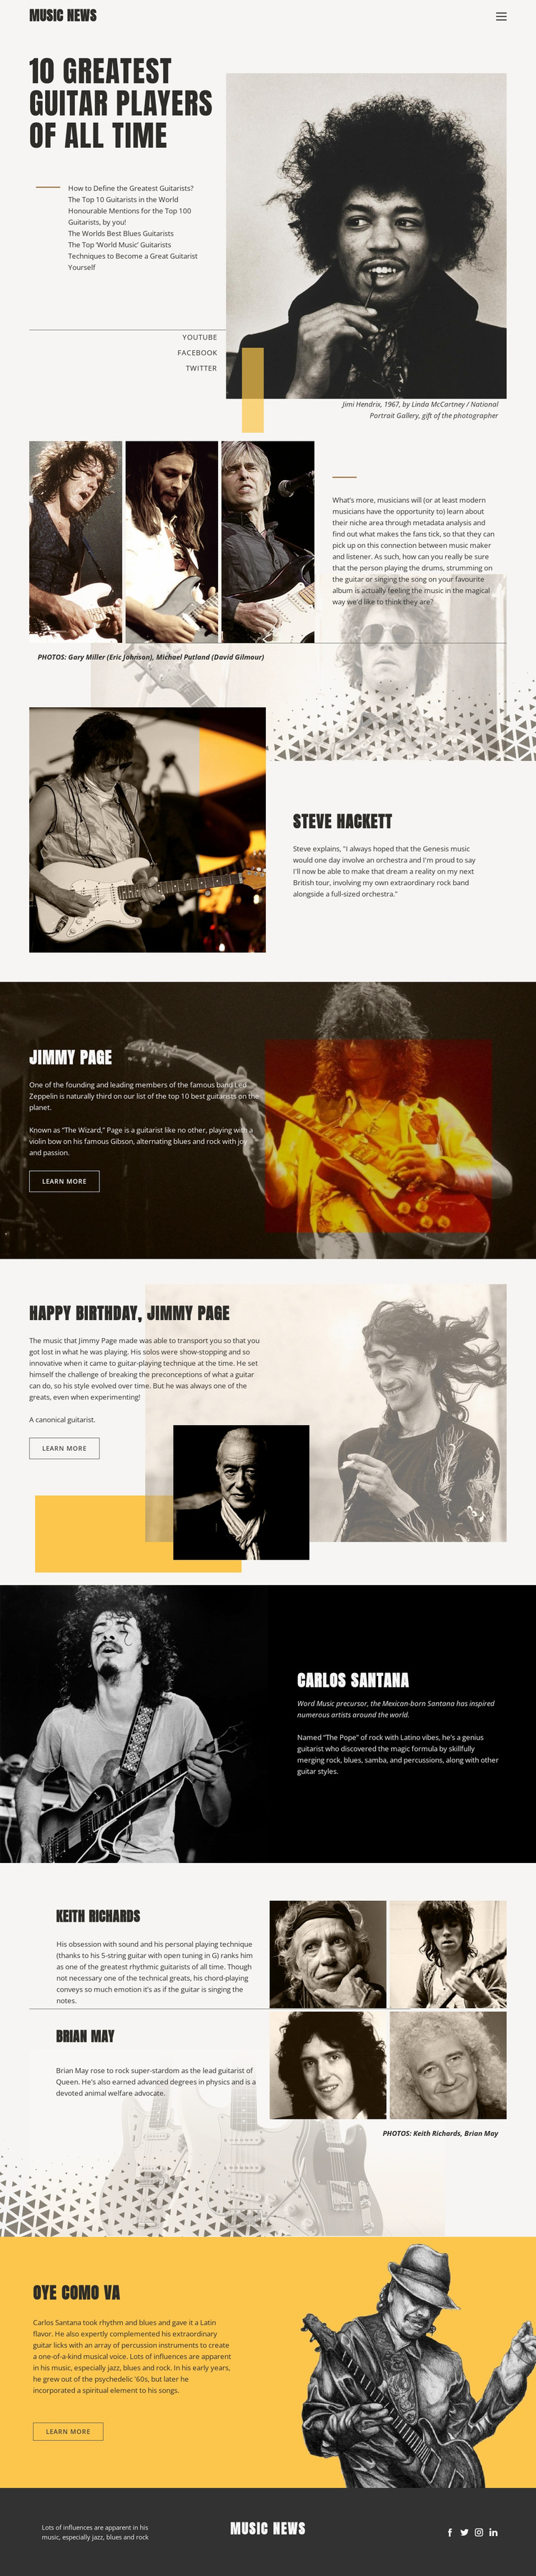 The Top Guitar Players Website Builder